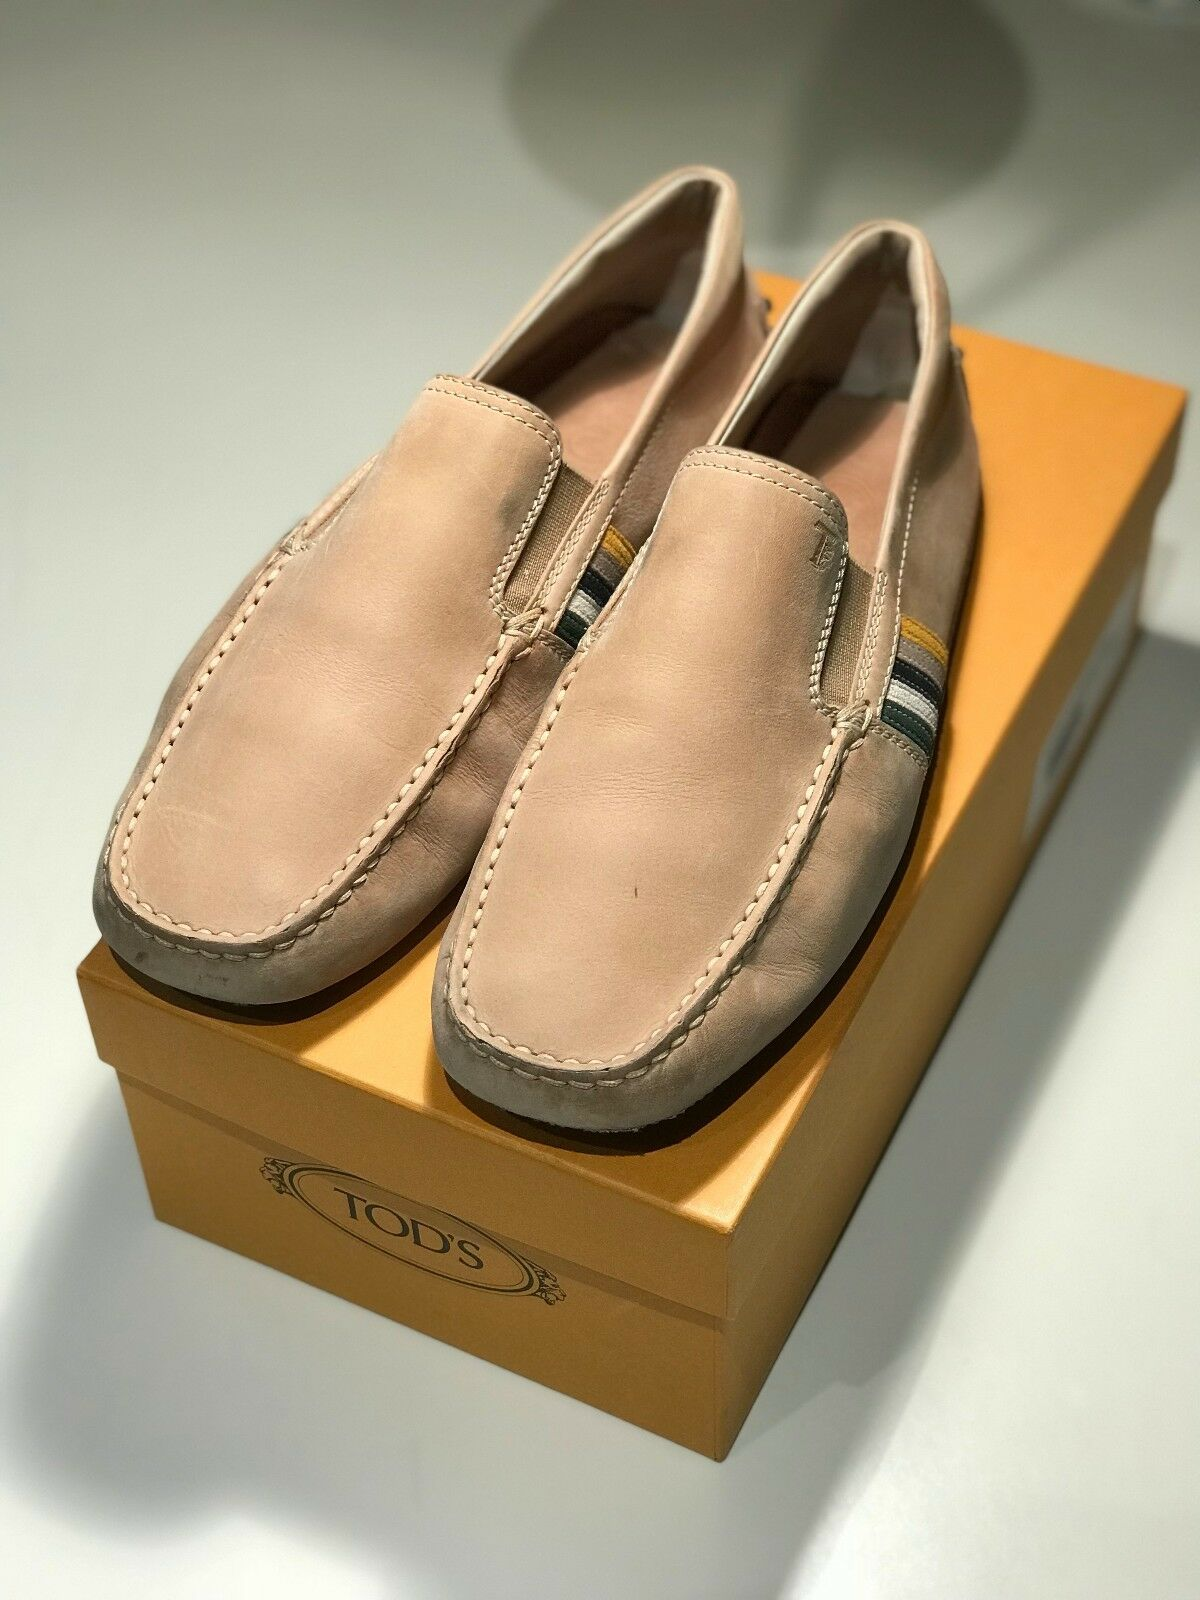 Tods Beige Loafers Moccasins with Stripes (Sz 40)